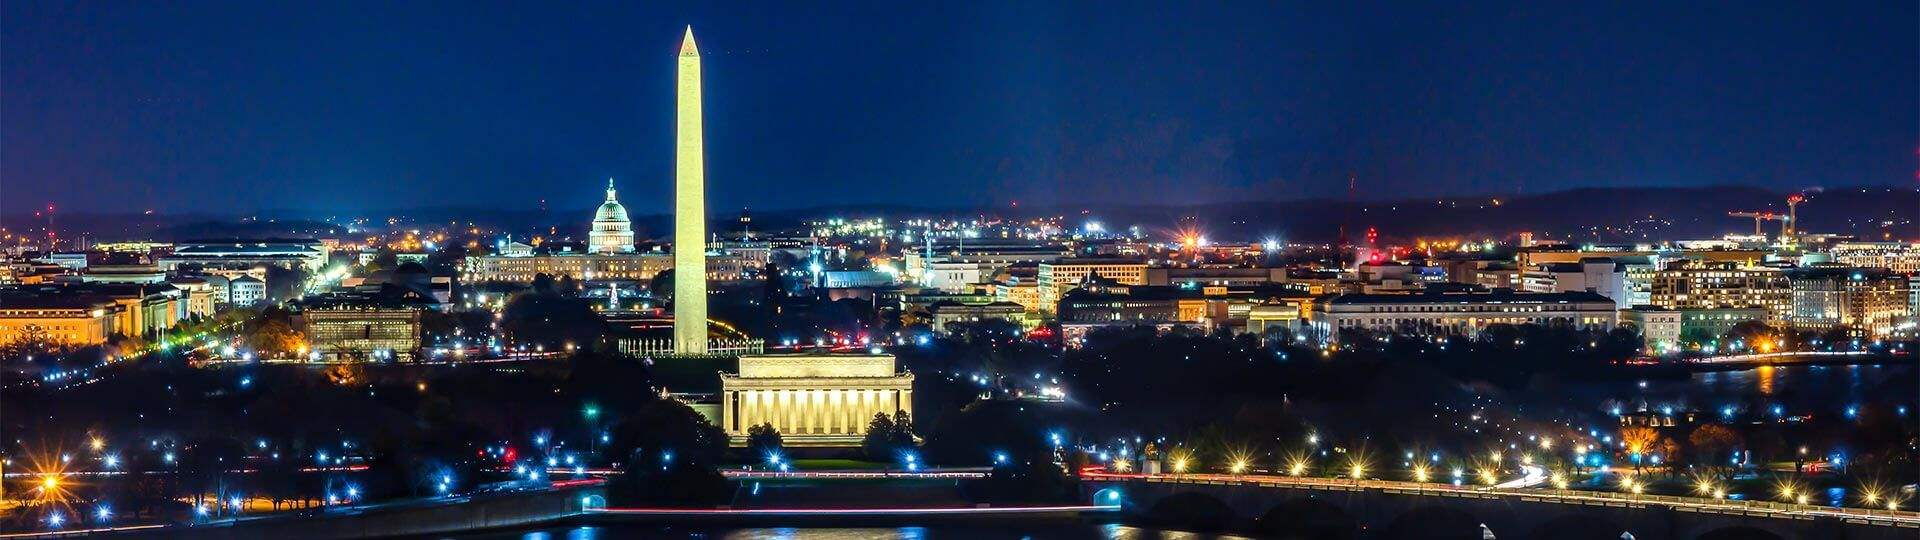 Location & Contact Of Perch Sw Rooftop Lounge Washington Dc